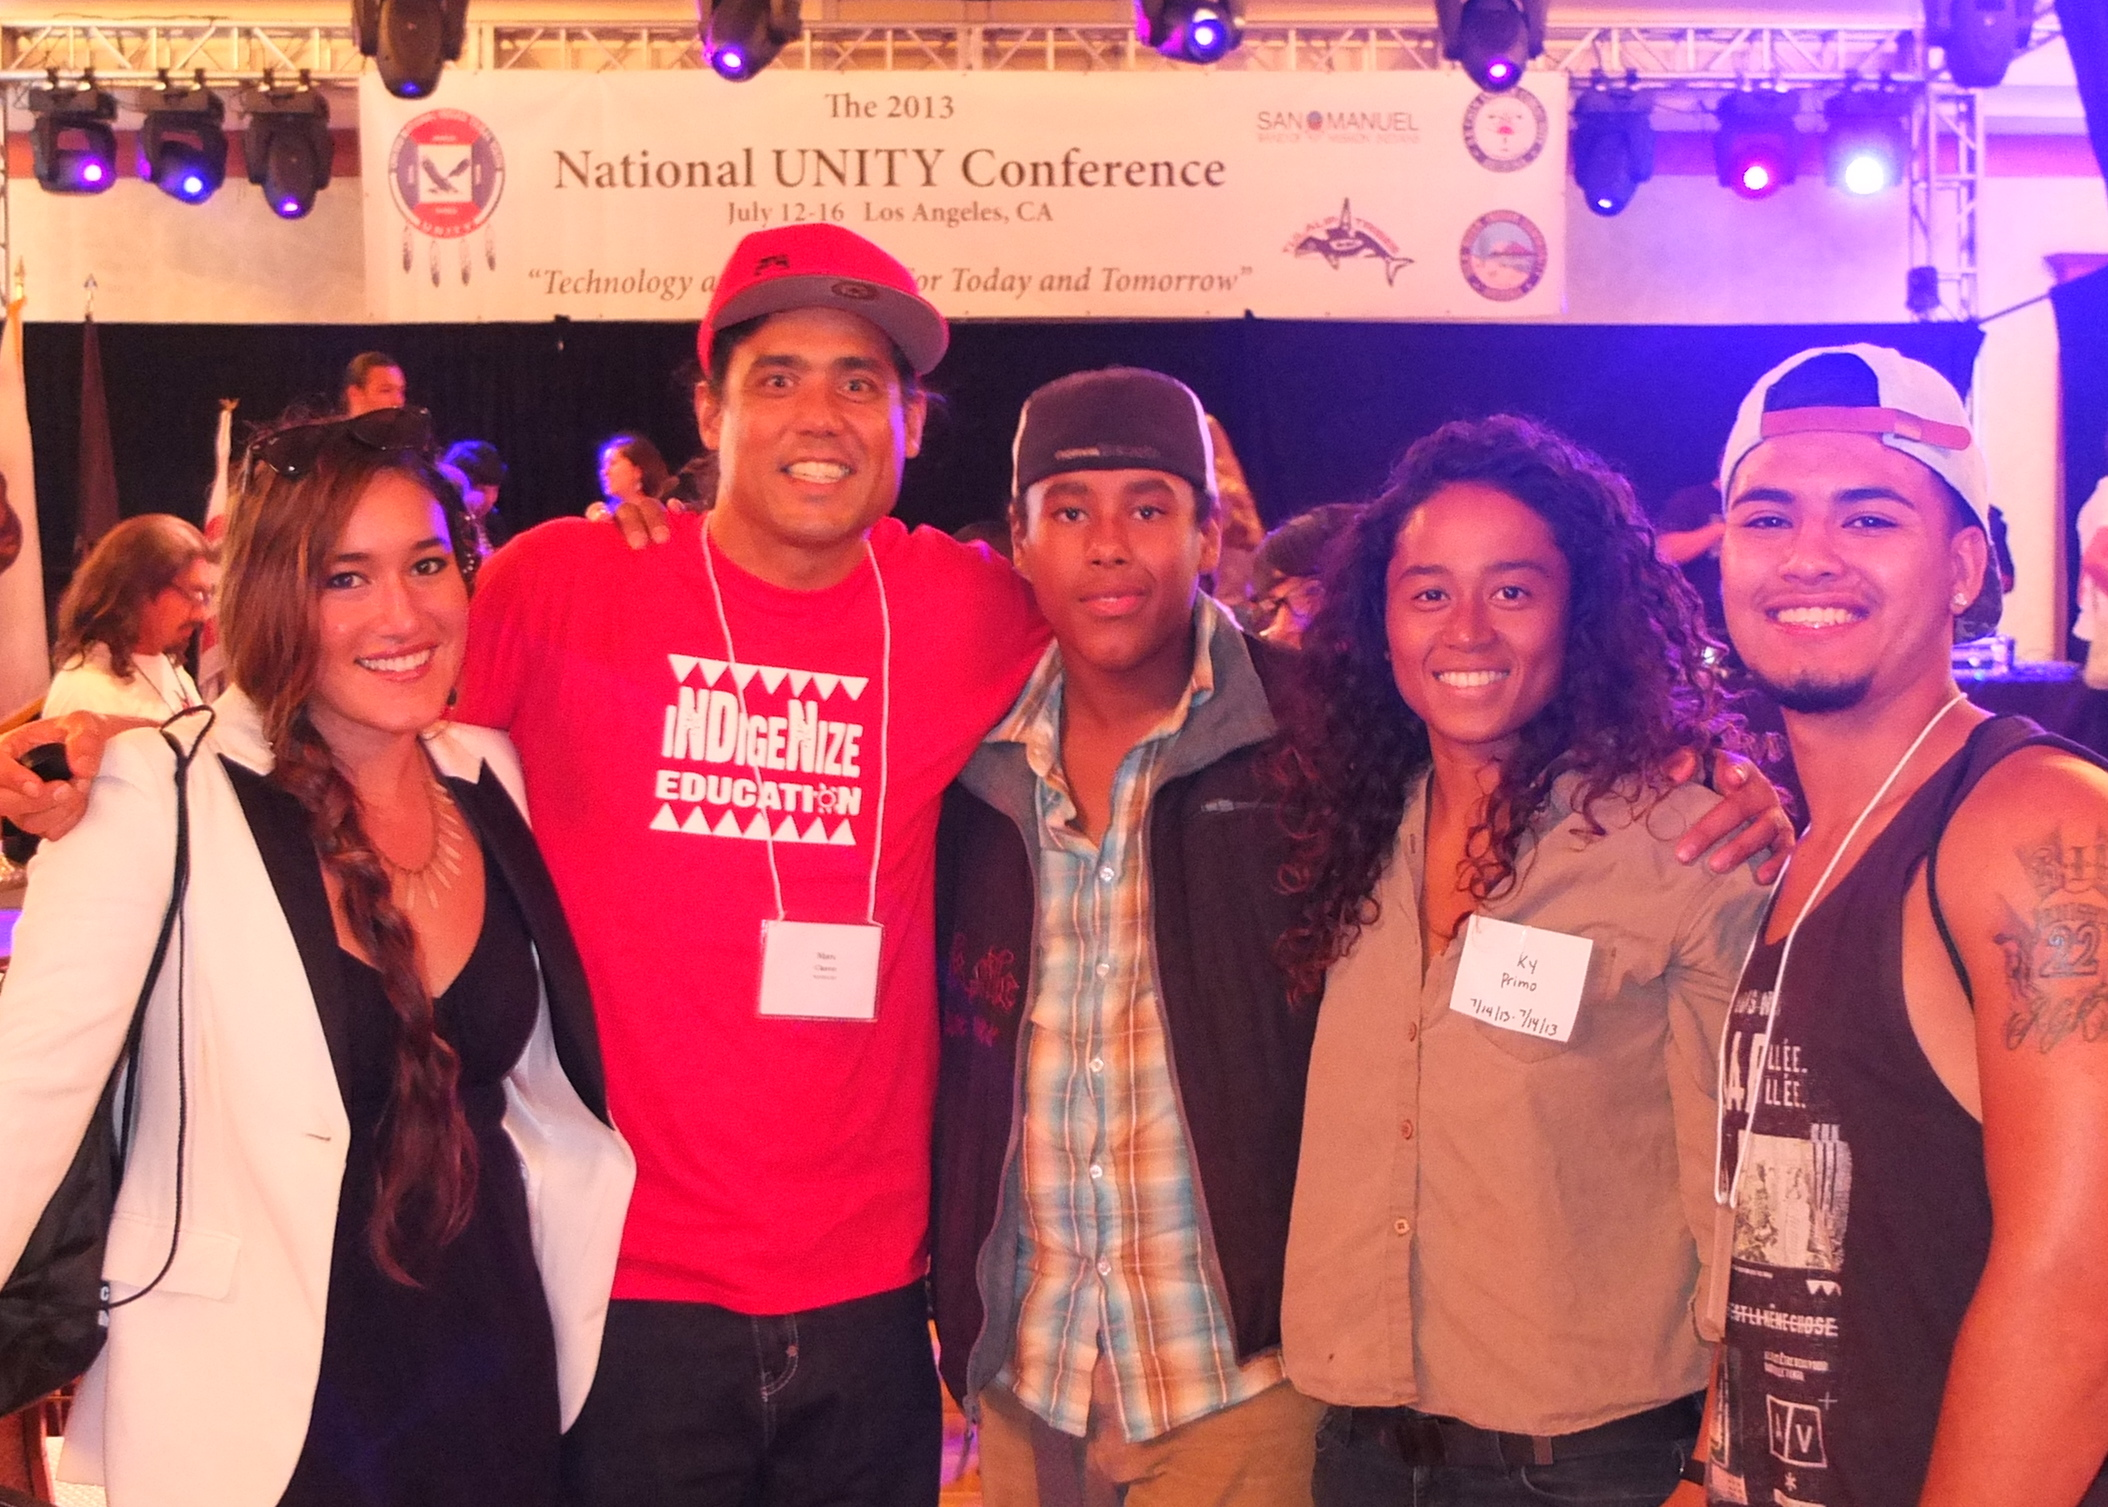 """ITY Presentation of """"Facebook Indians"""" at National UNITY YOuth Conference with ITY Alum, Interns, and actress Qorianka during our ITY Presentation on """"Facebook Indians"""""""